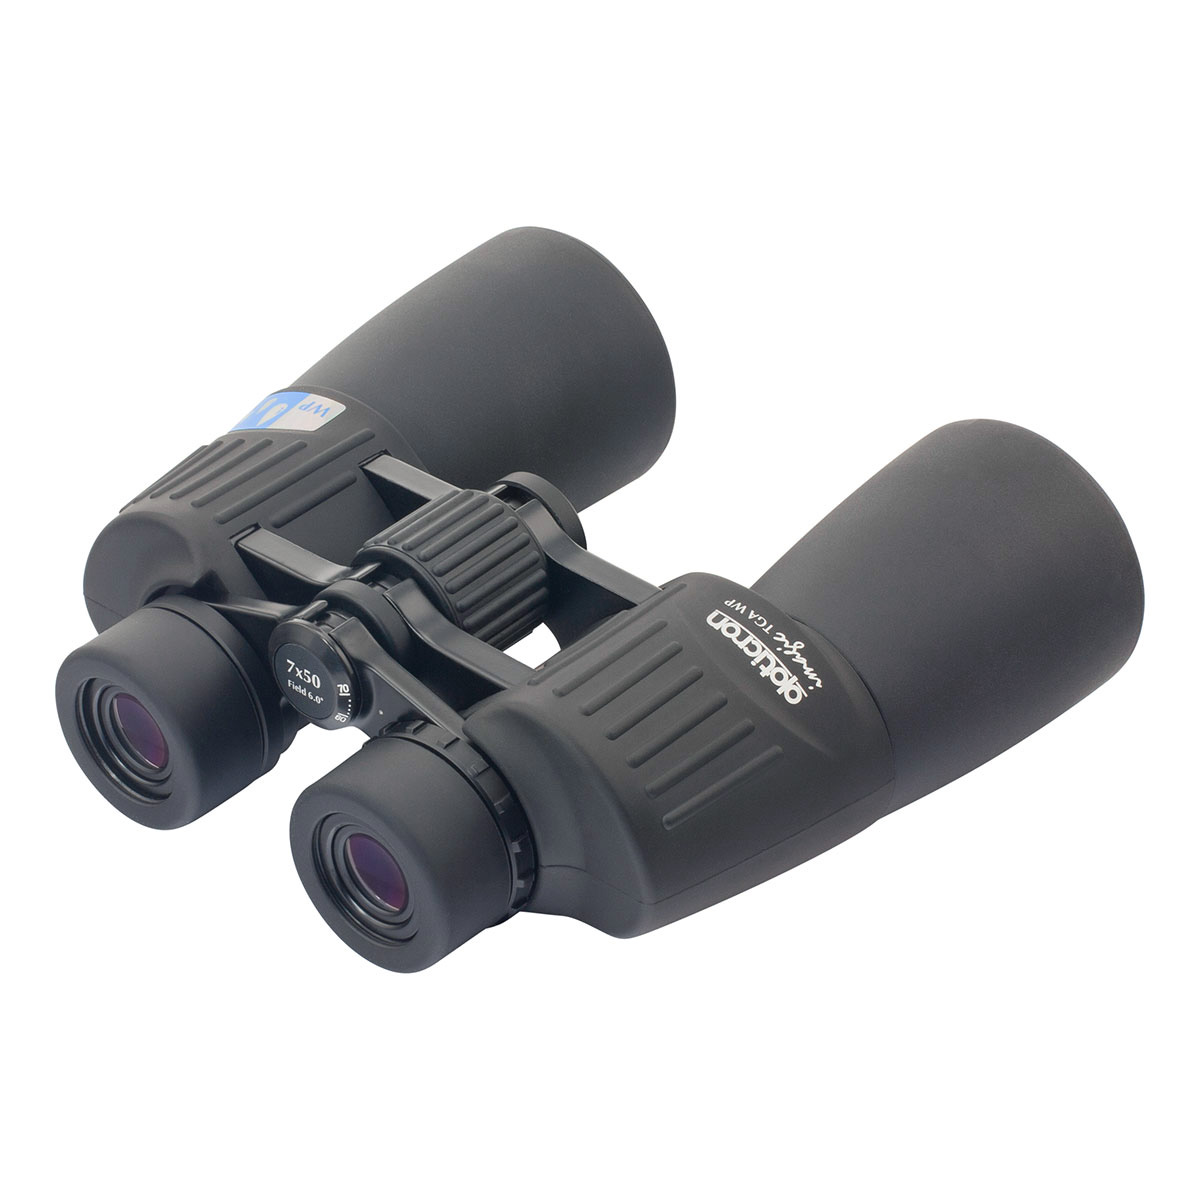 Opticron Imagic TGA WP 50mm Binoculars